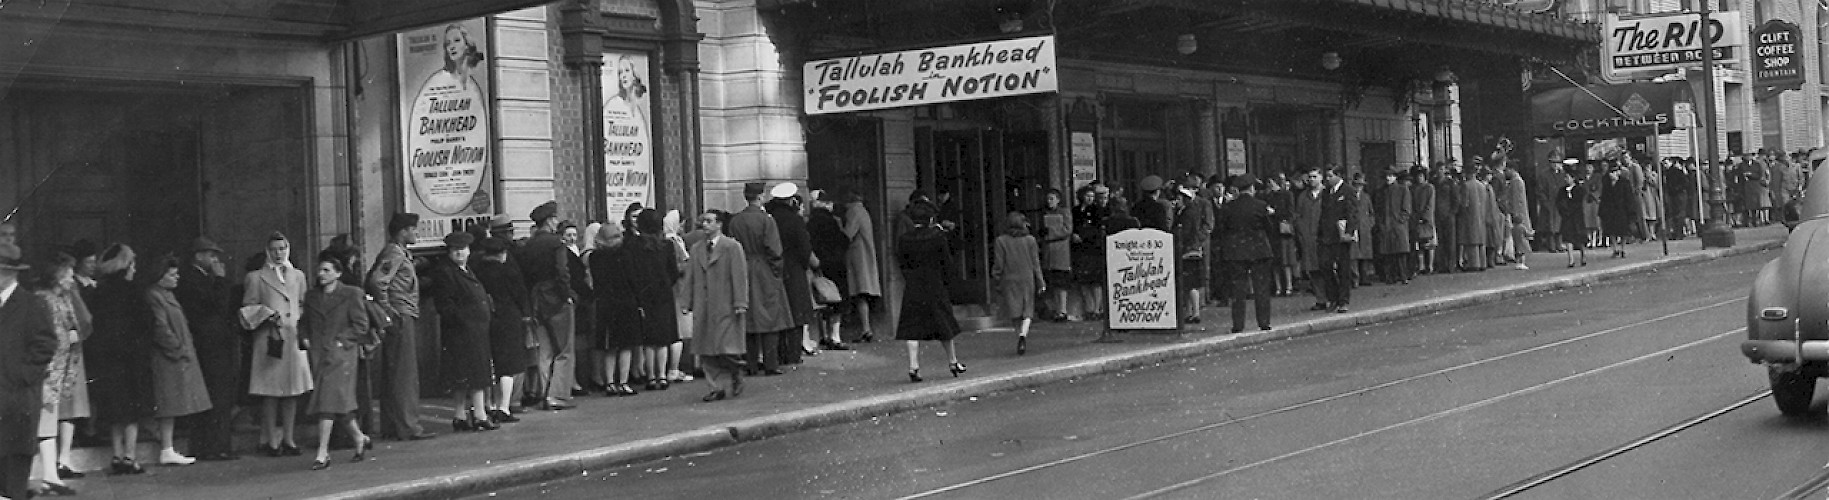 FOOLISH NOTION: The winter of 1946, there was an extremely tight turnaround of 1 day between Tallulah Bankhead's performance in FOOLISH NOTION and OKLAHOMA!. Despite having opened on Broadway three years earlier to overwhelming critical acclaim, this was the first time OKLAHOMA! had toured the West Coast. Throughout the three week run of FOOLISH NOTION, audiences anxiously waited in line for OKLAHOMA! tickets.